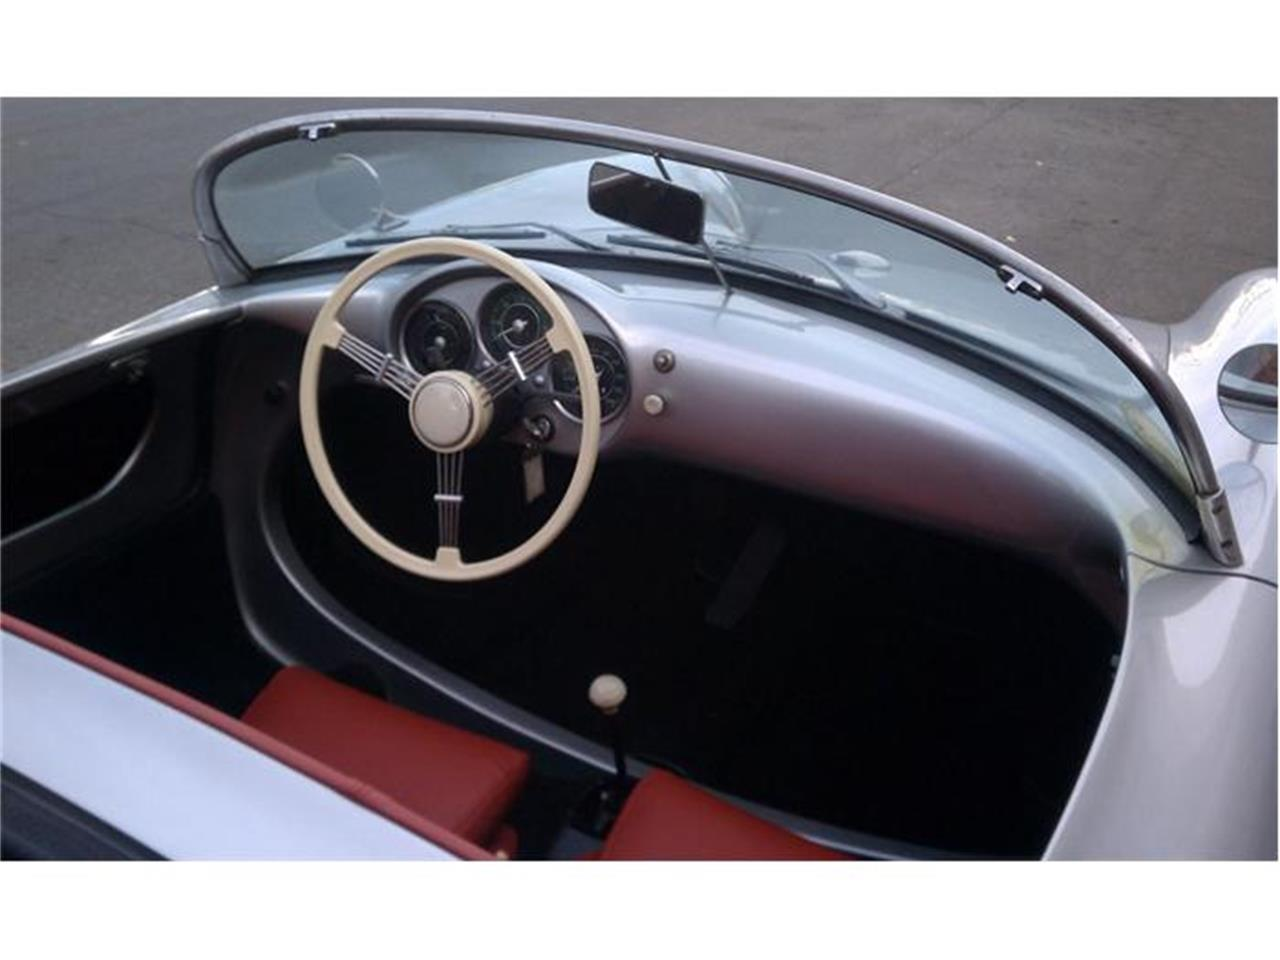 Large Picture of Classic '55 Porsche 550 Spyder Replica - $34,950.00 - AH6S